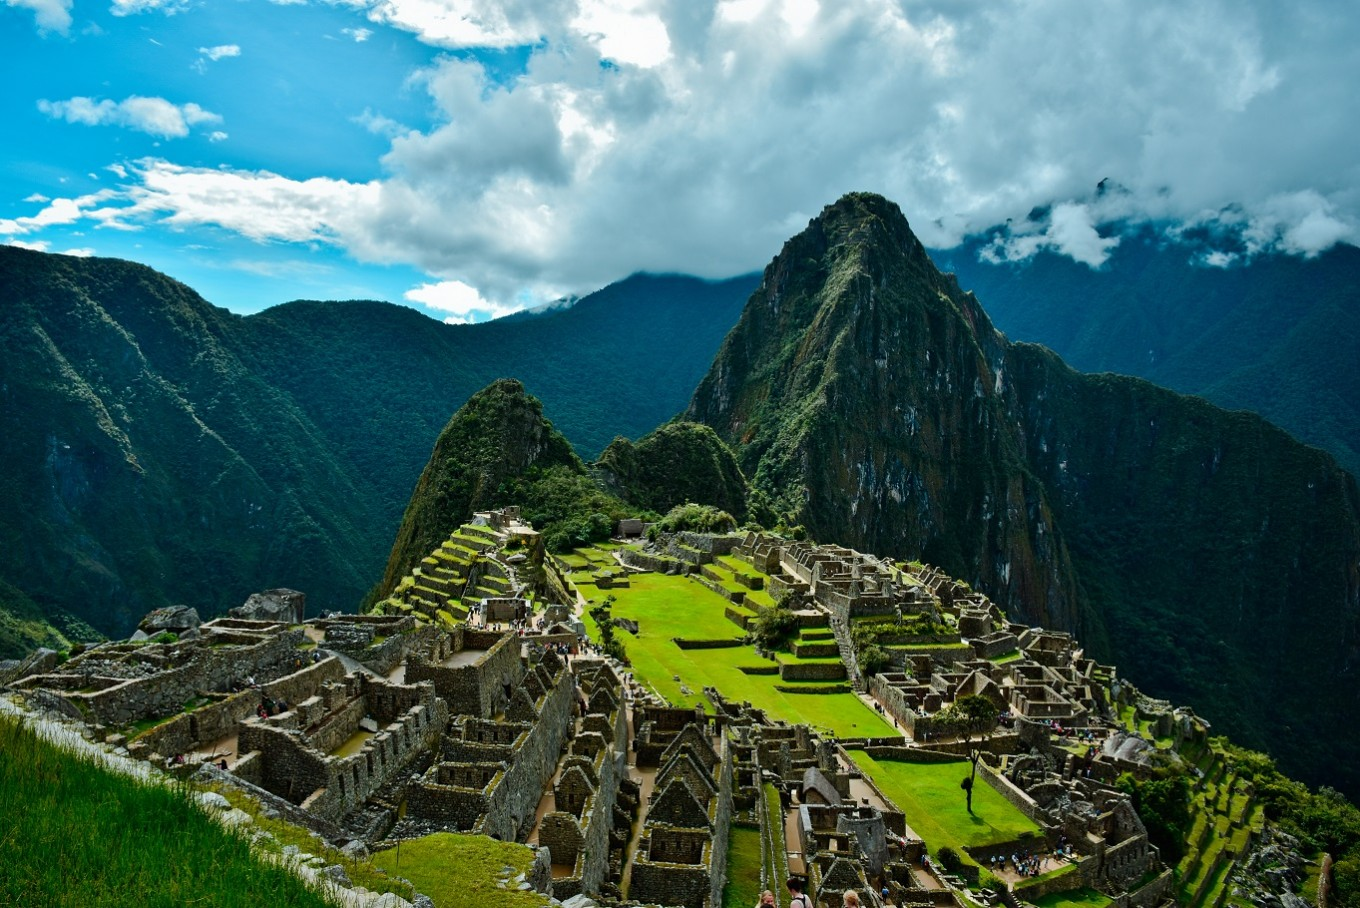 Tourists accused of damaging, defecating on Machu Picchu